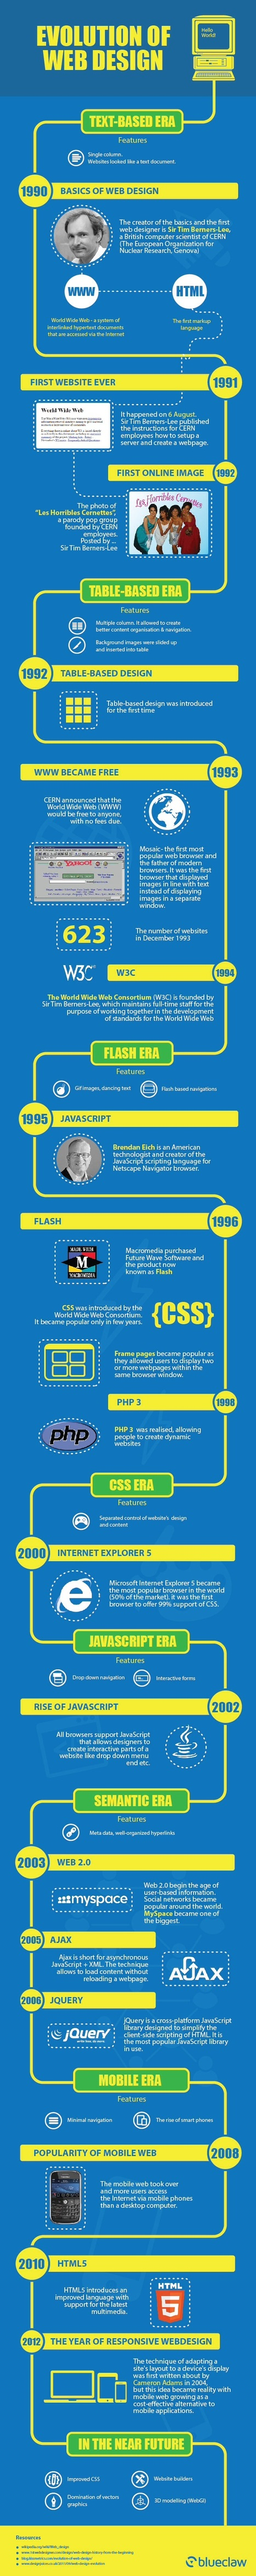 Evolution of Web Design  #infographic | Digital Brand Marketing | Scoop.it